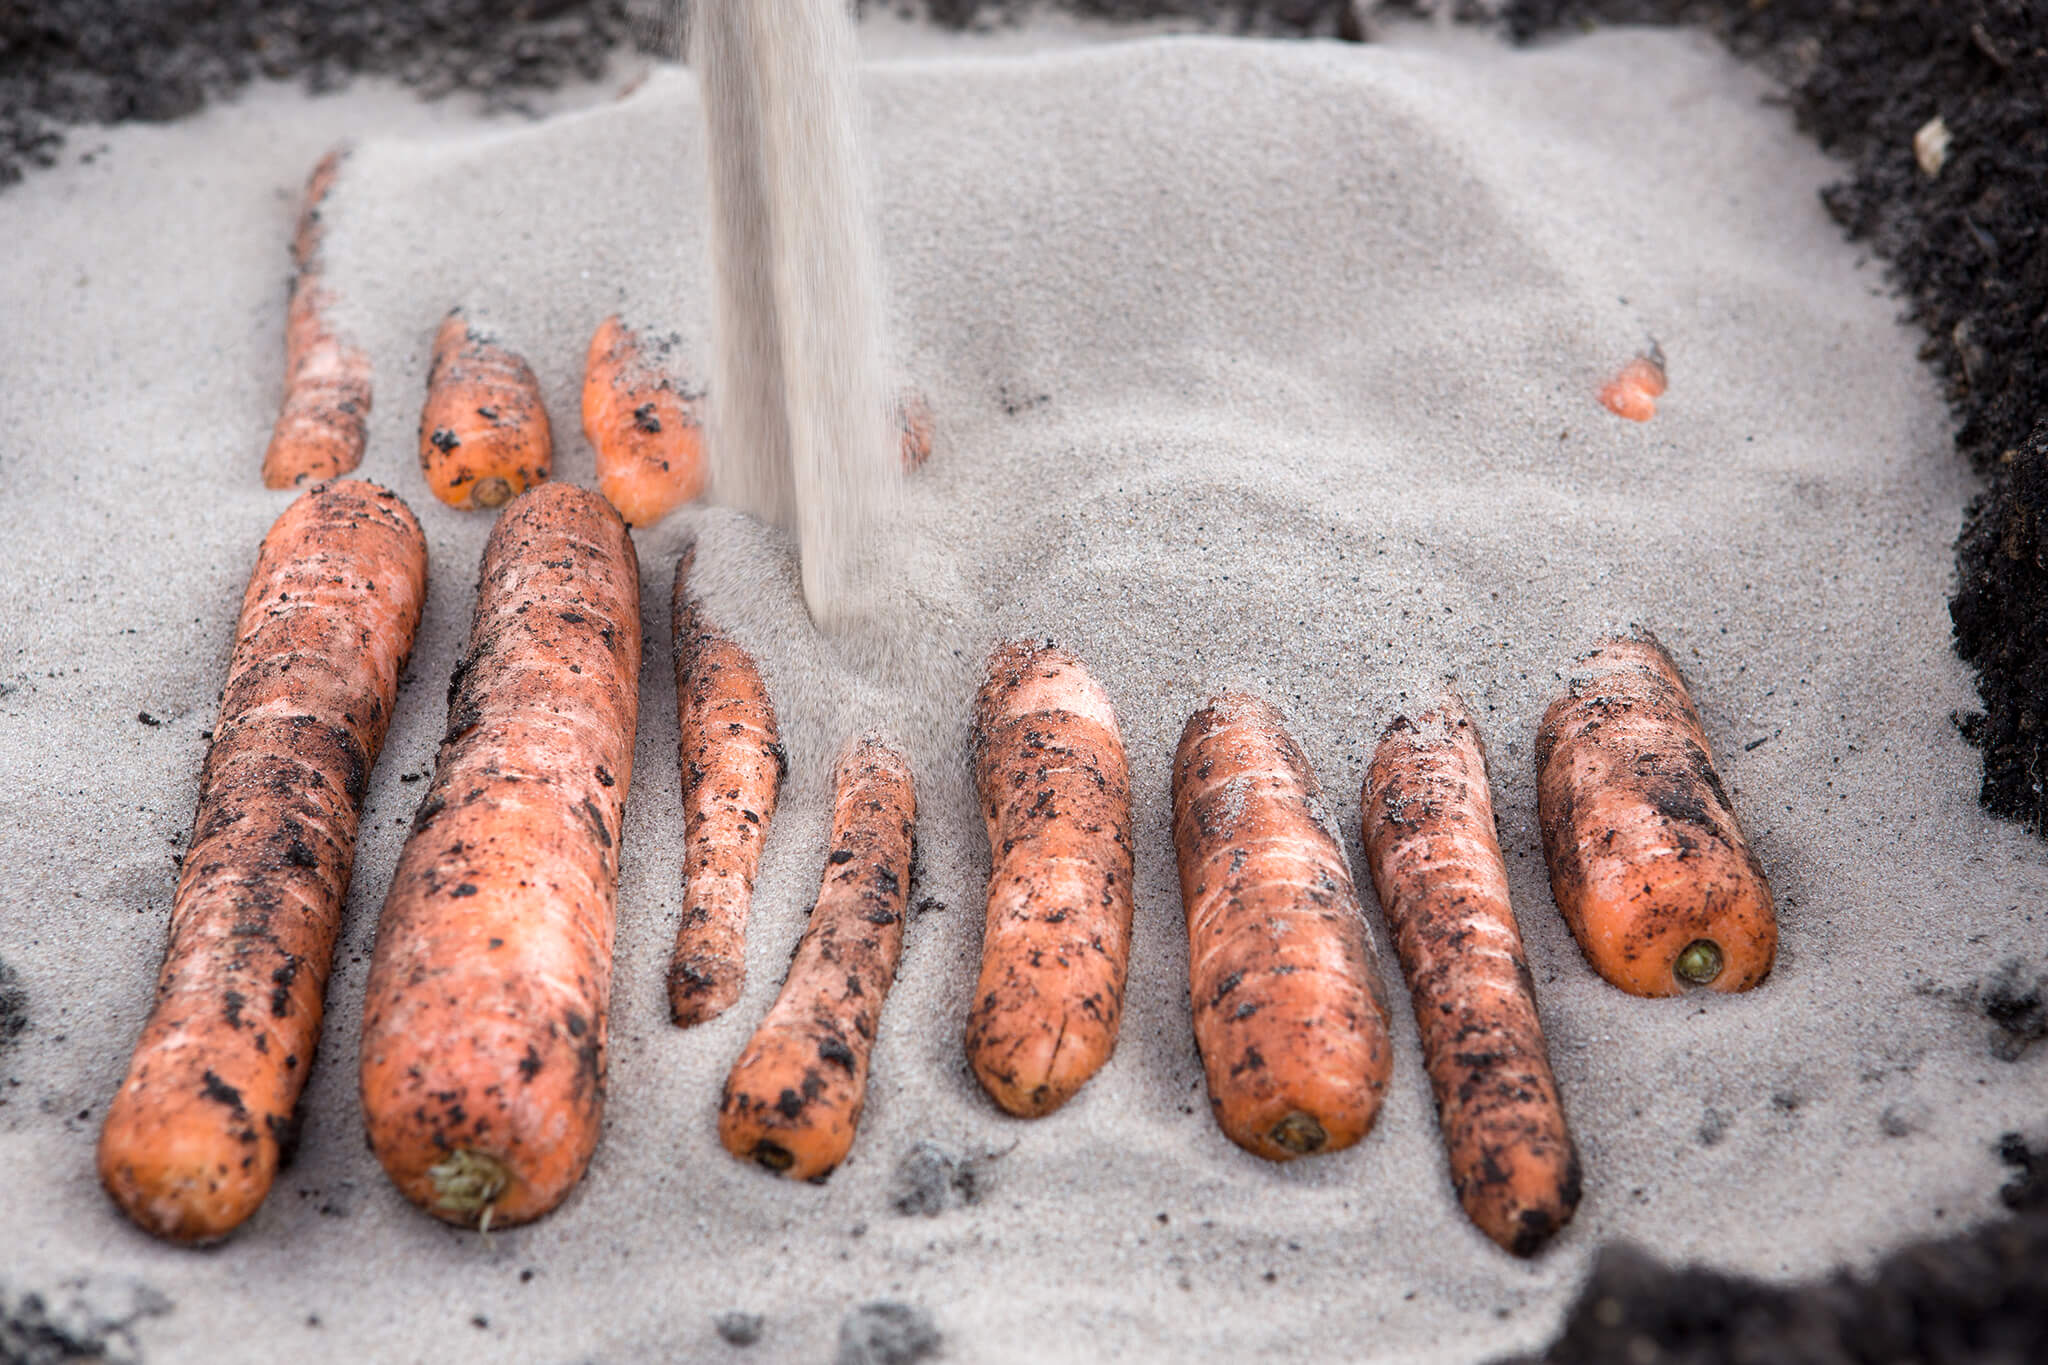 add-the-carrots-then-add-more-sand-2